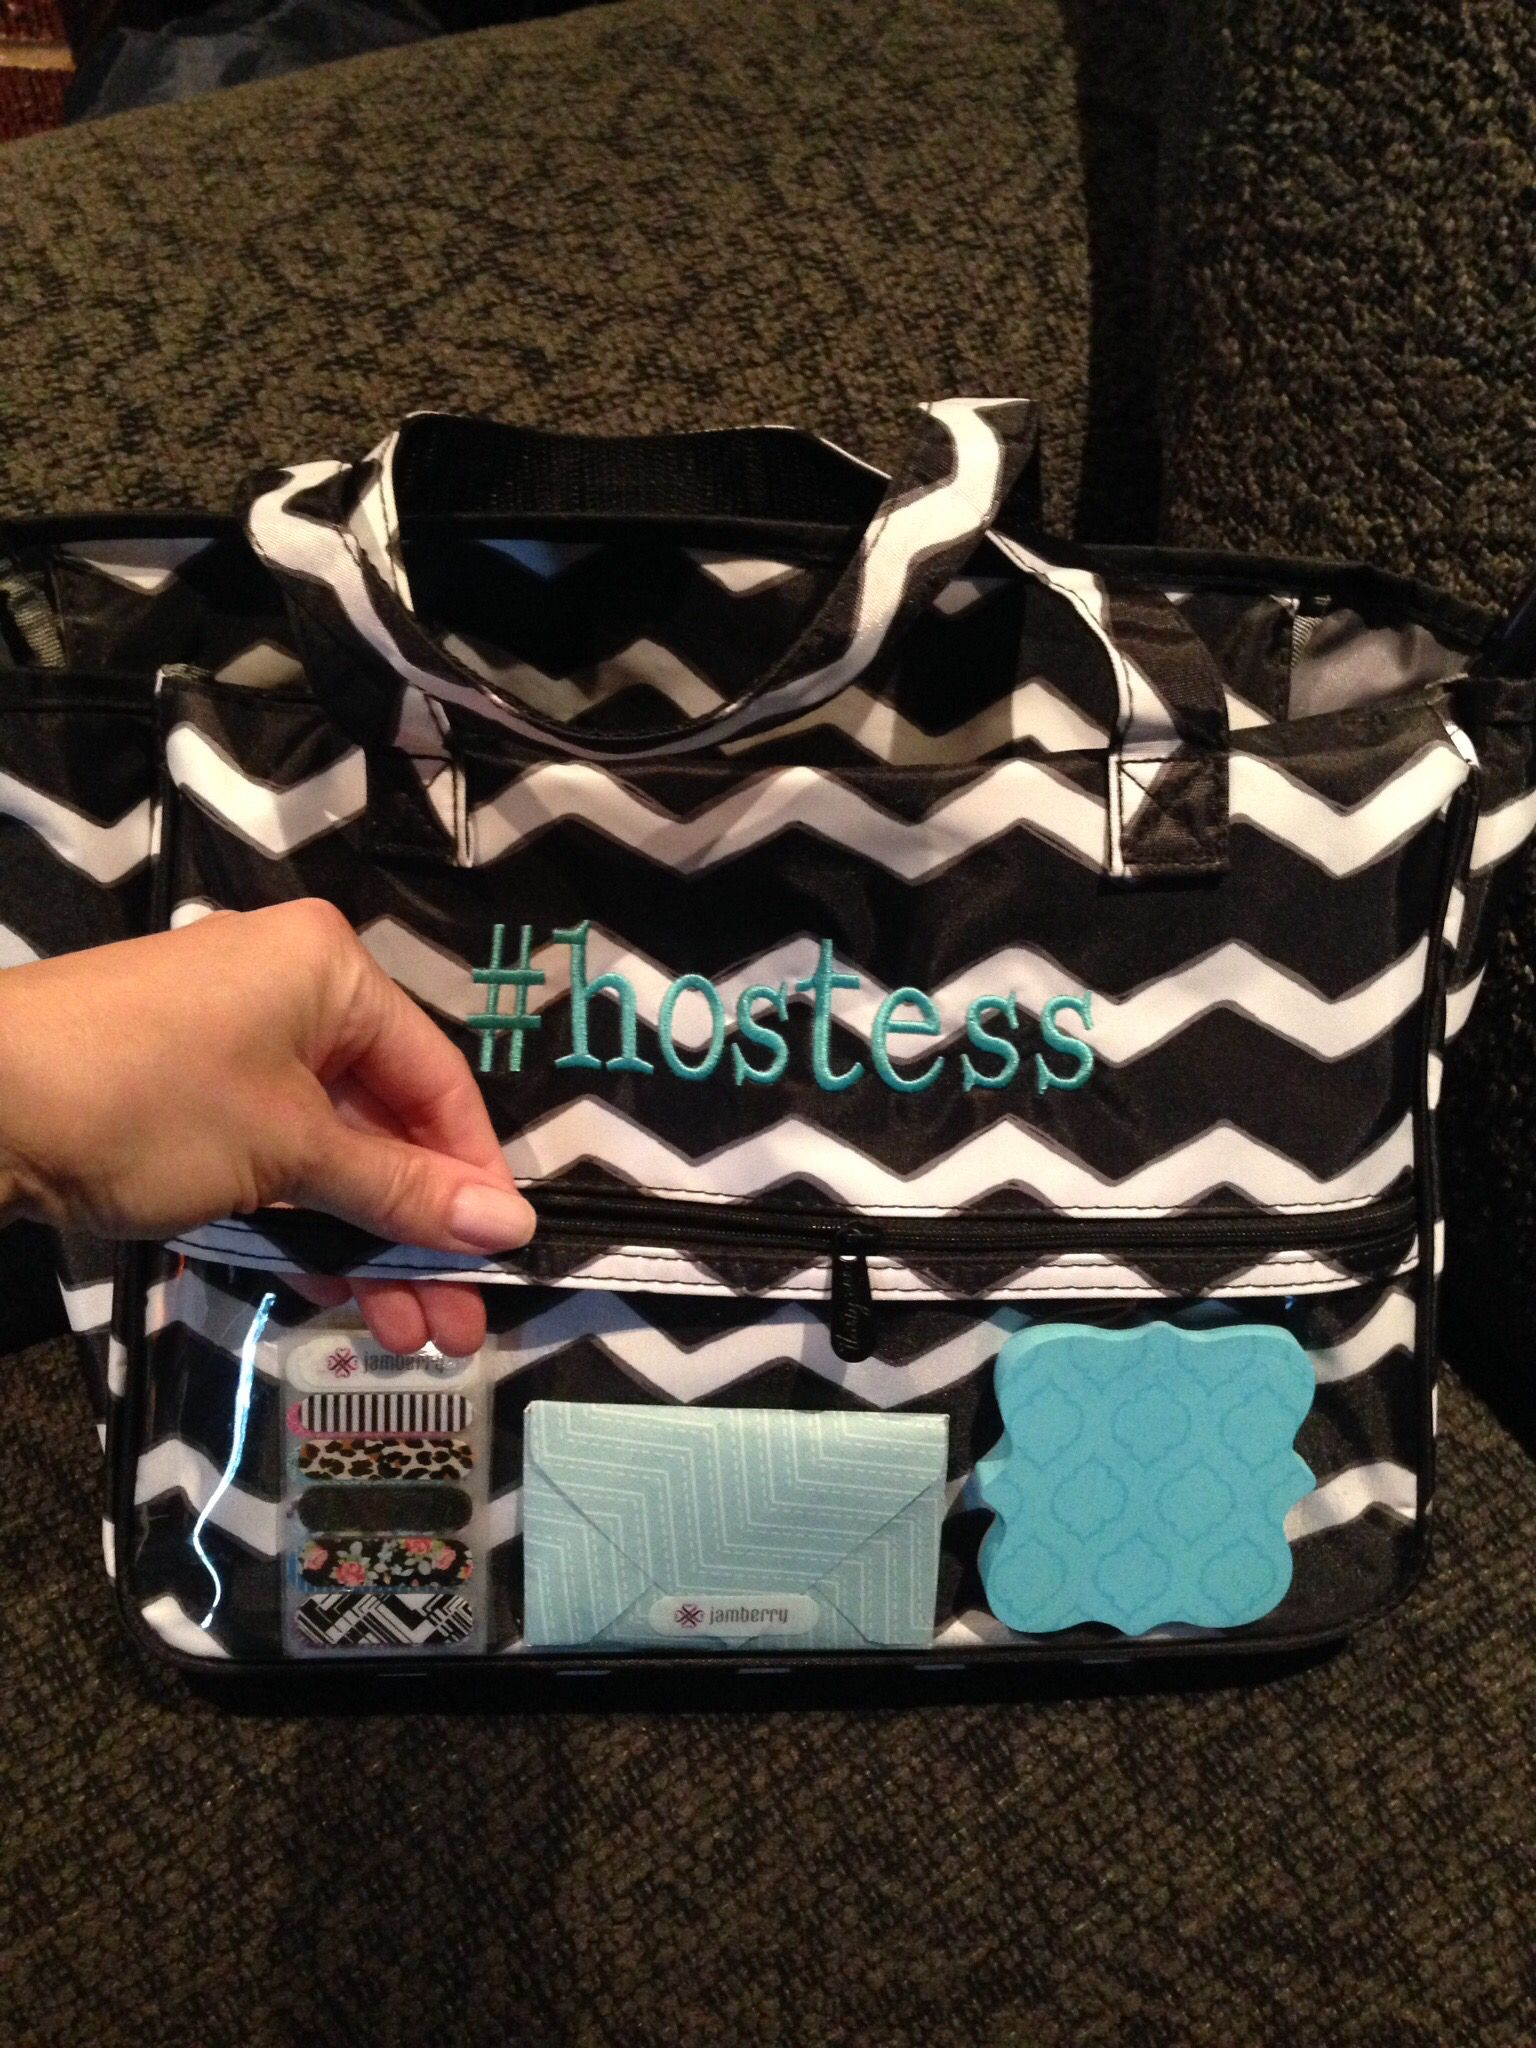 Spring Summer Hostess Exclusive True Beauty Bag Great To Subtly Advertise While Out And